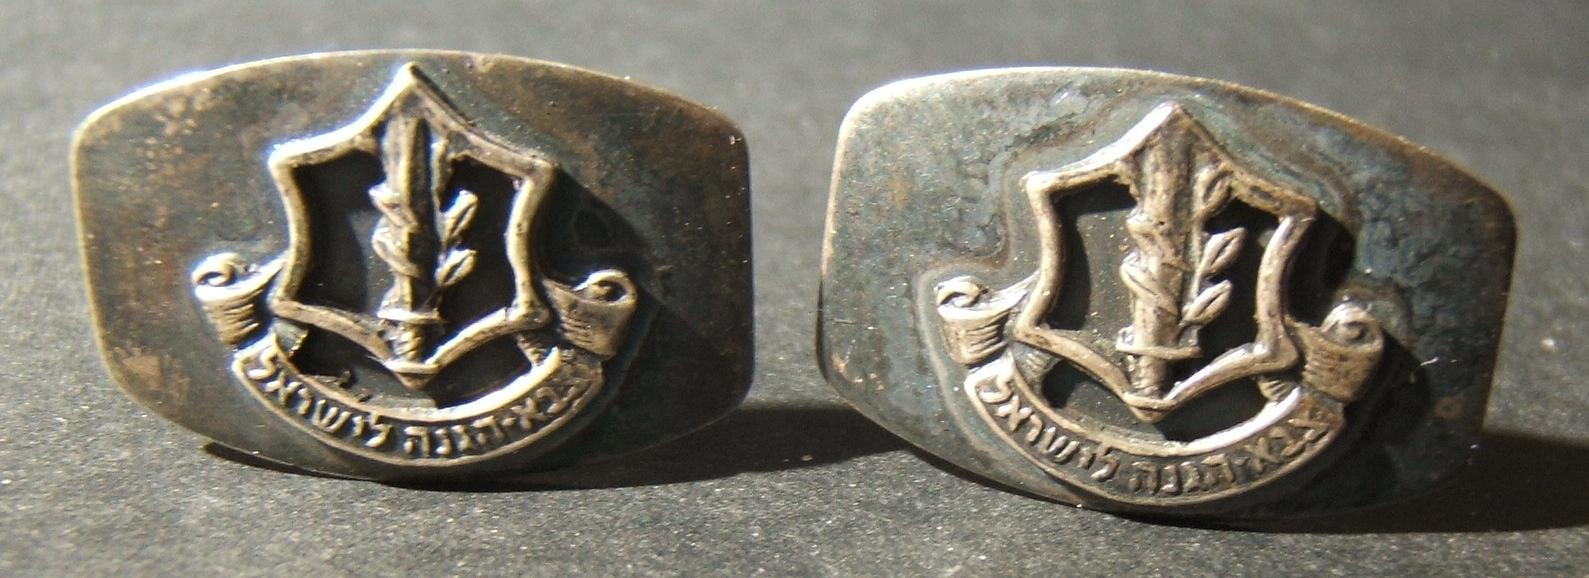 IDF pair of dress uniform cufflinks, possibly in silver (the base, unmarked), circa. 1950's; size: 20.5 x 13.5 x 25mm; weight: c. 3.2g each.